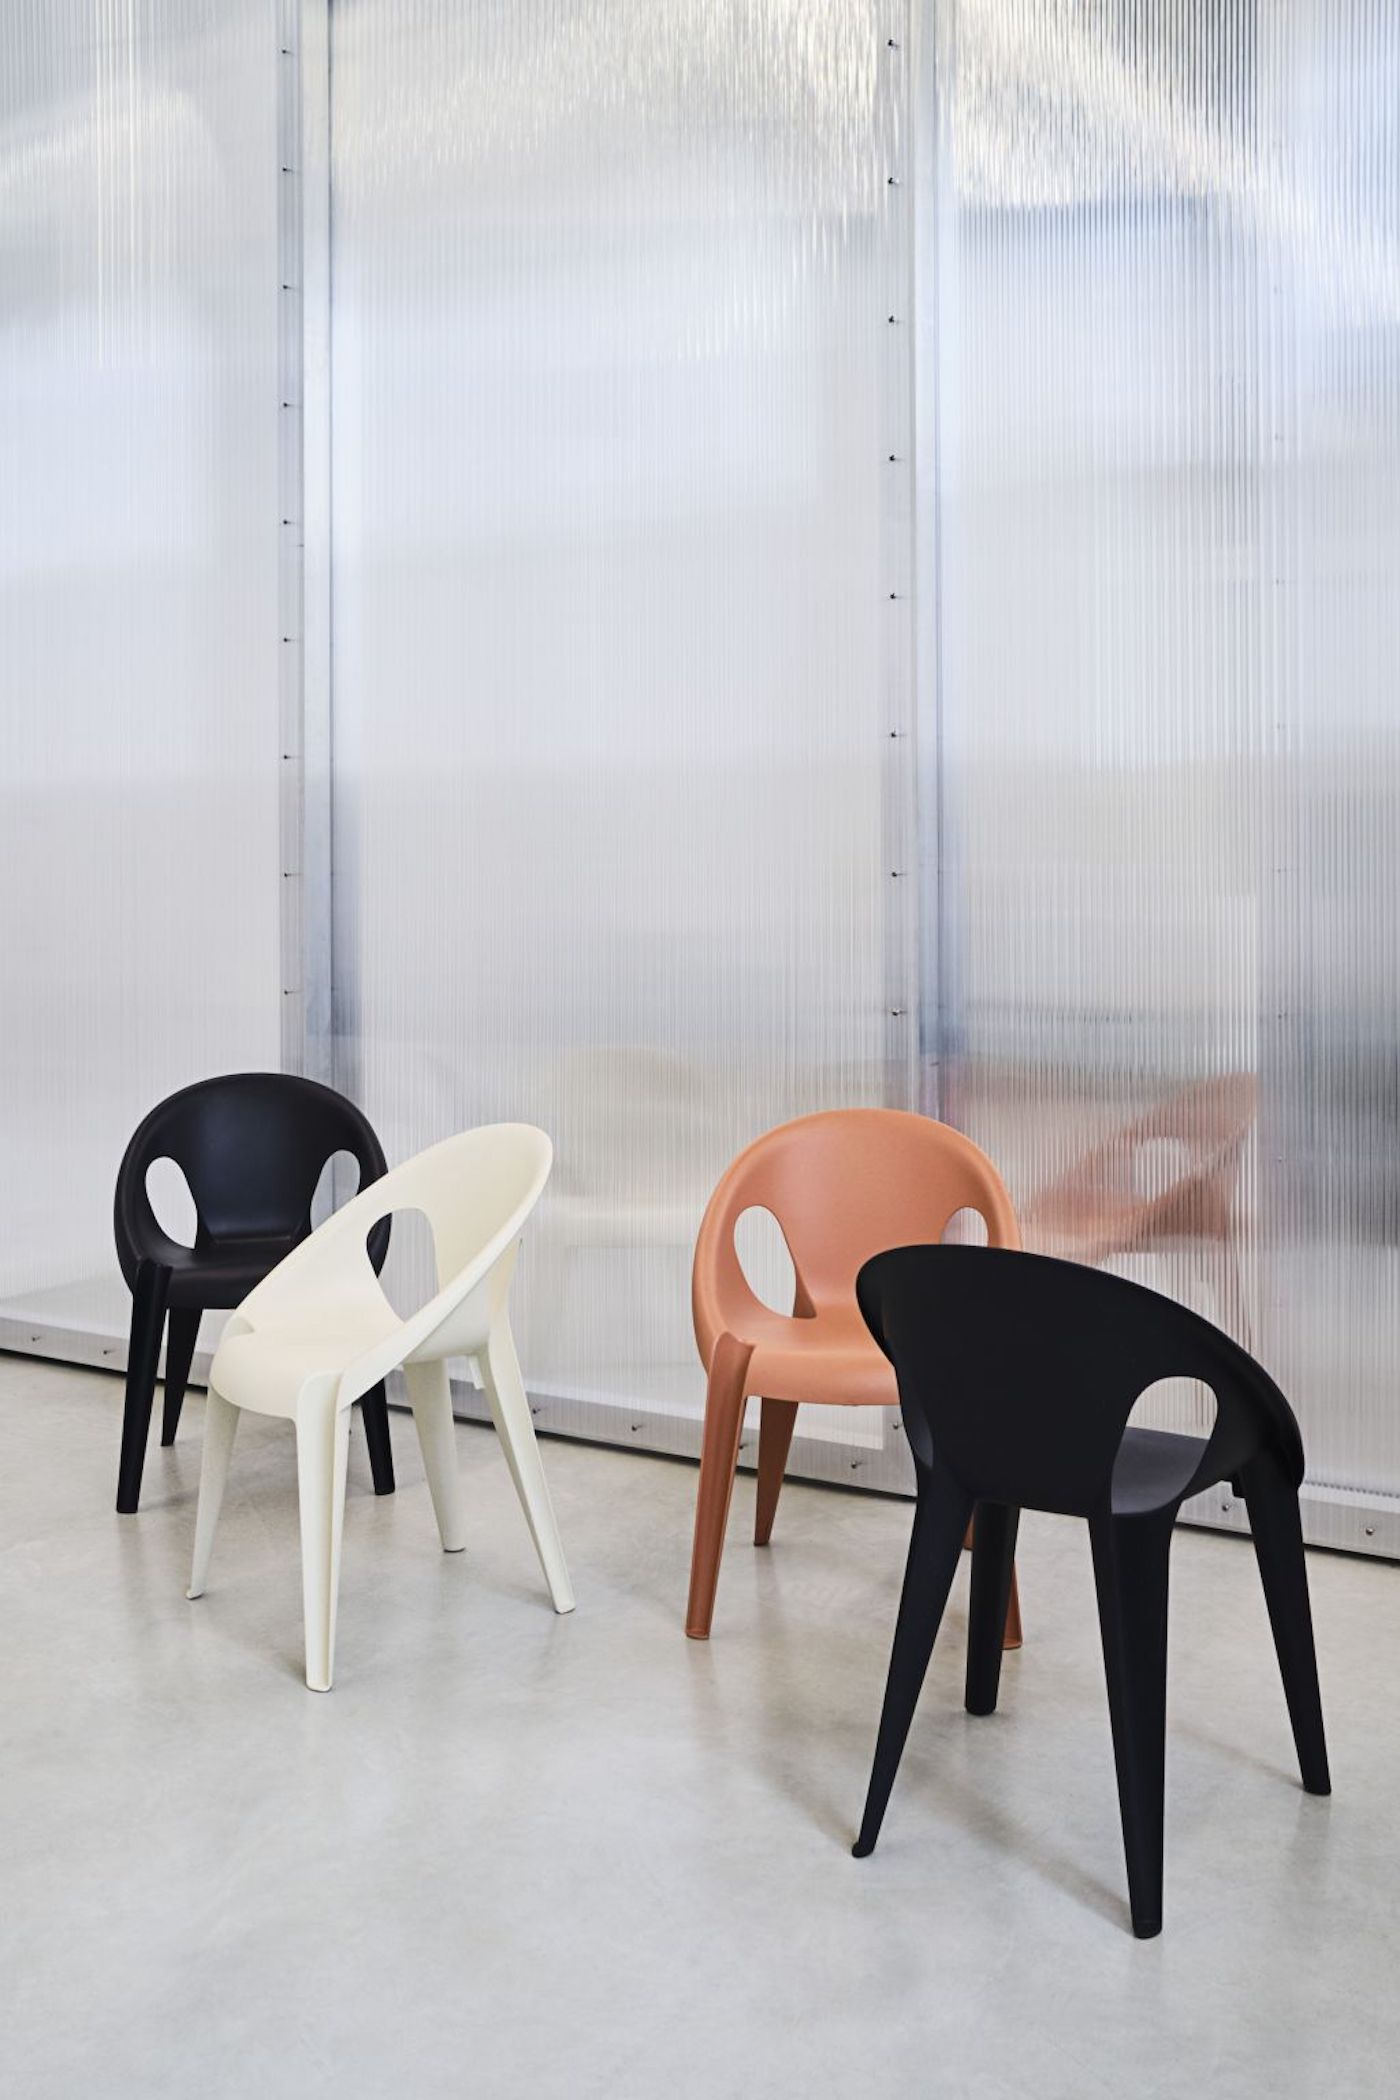 Eco Edition_Konstantin Grcic Design_Bell Chair_Sustainable architecture interiors products 4-min